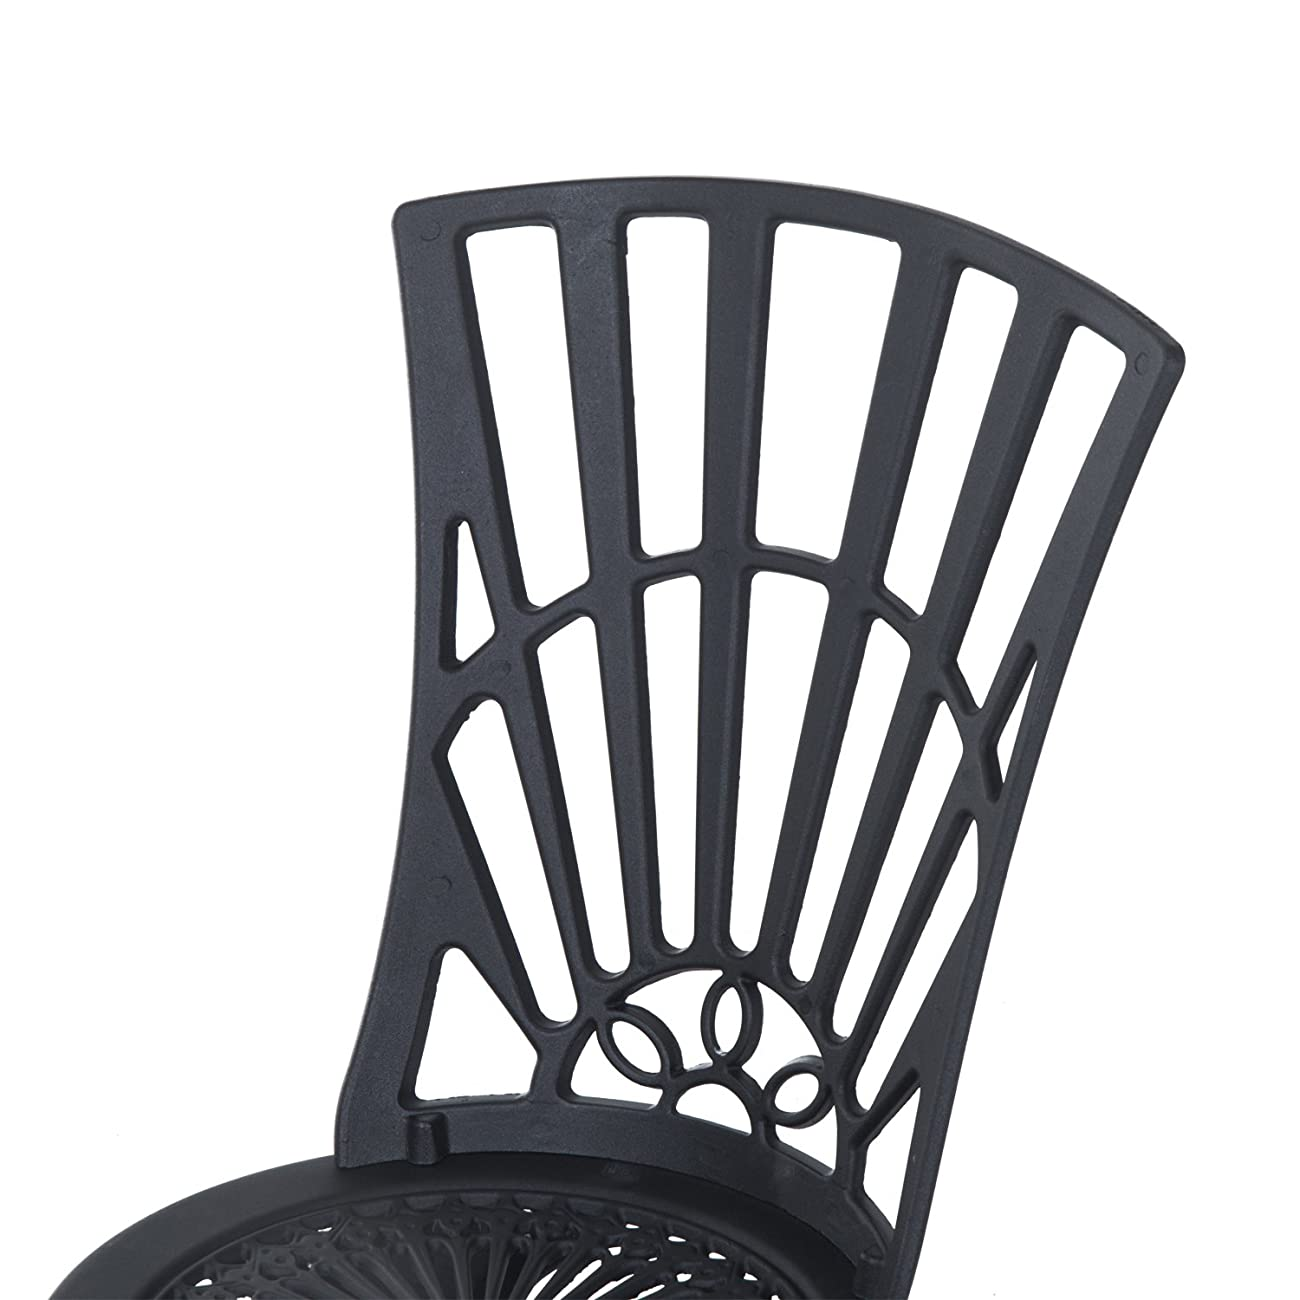 Outsunny 3 Piece Antique Style Outdoor Patio Bistro Dining Set - Black 5